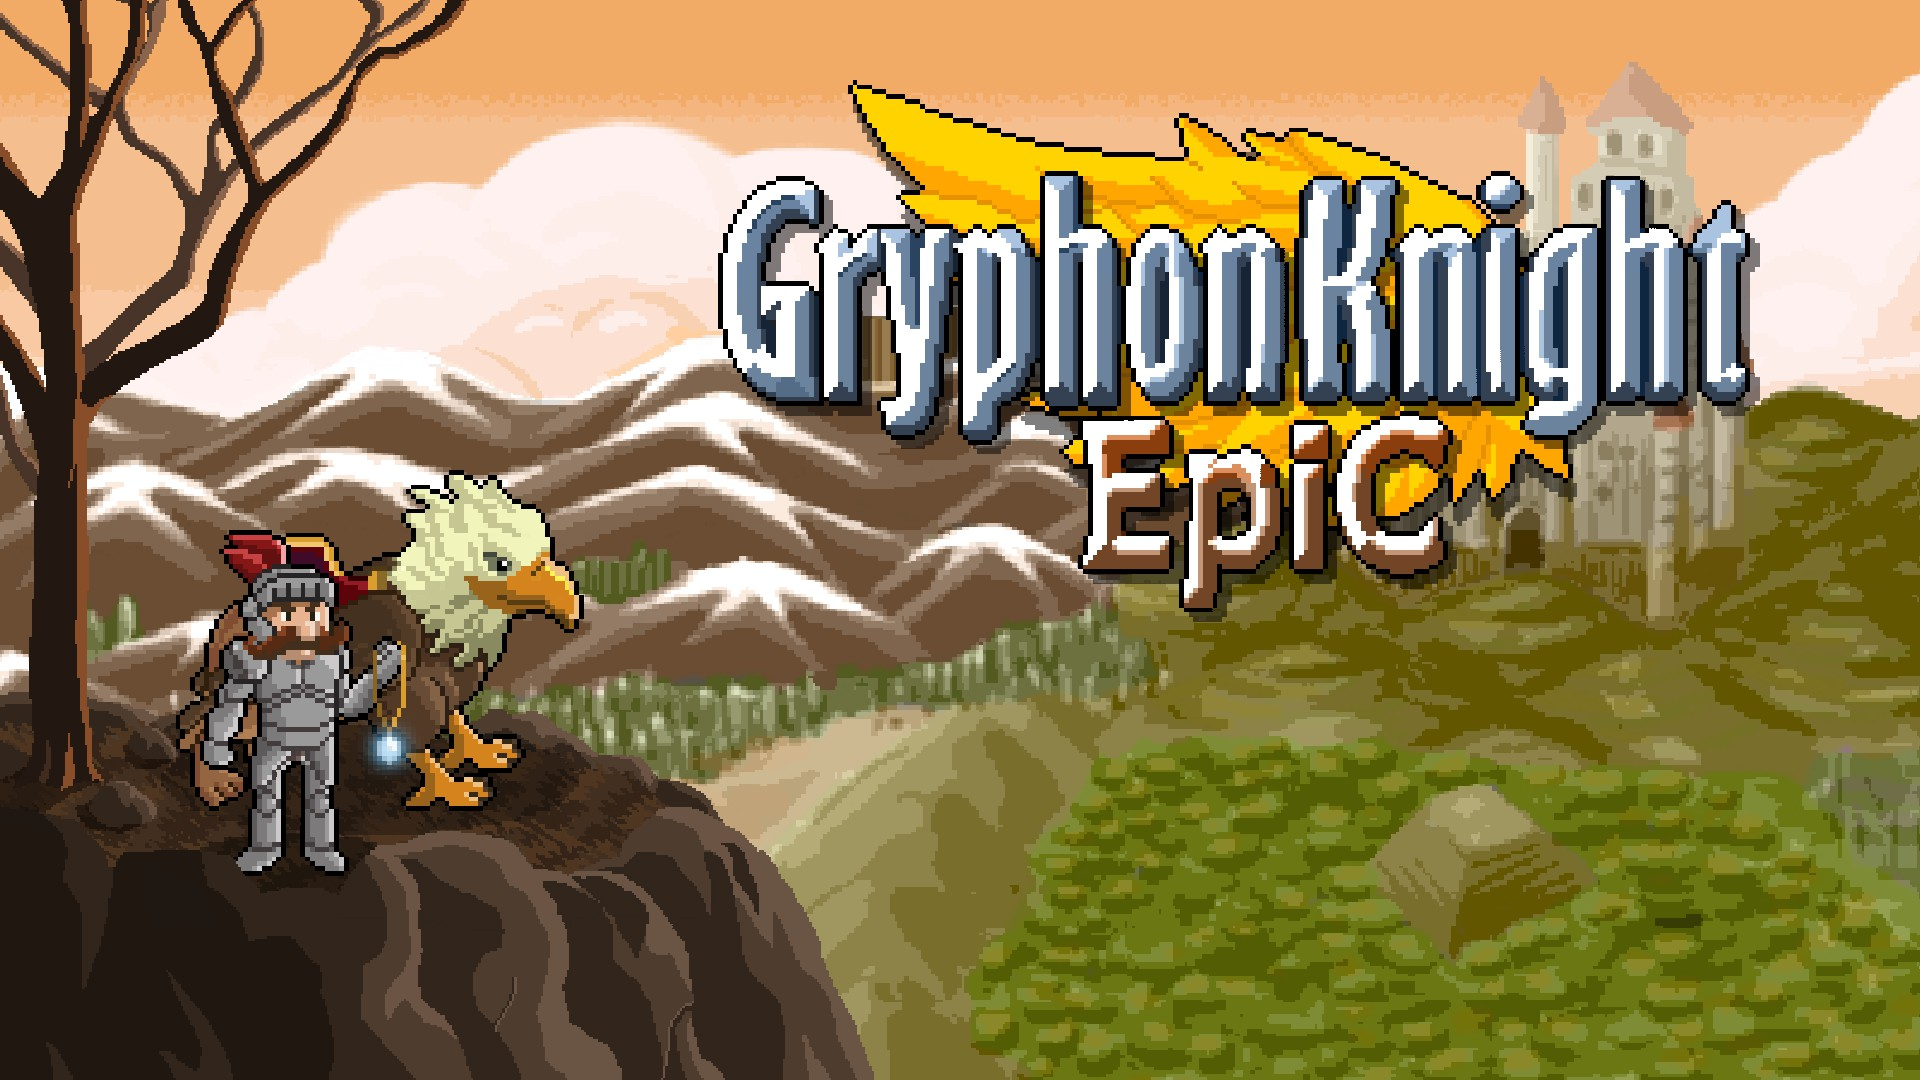 Gryphon Knight Epic – A charming mustachioed shooter